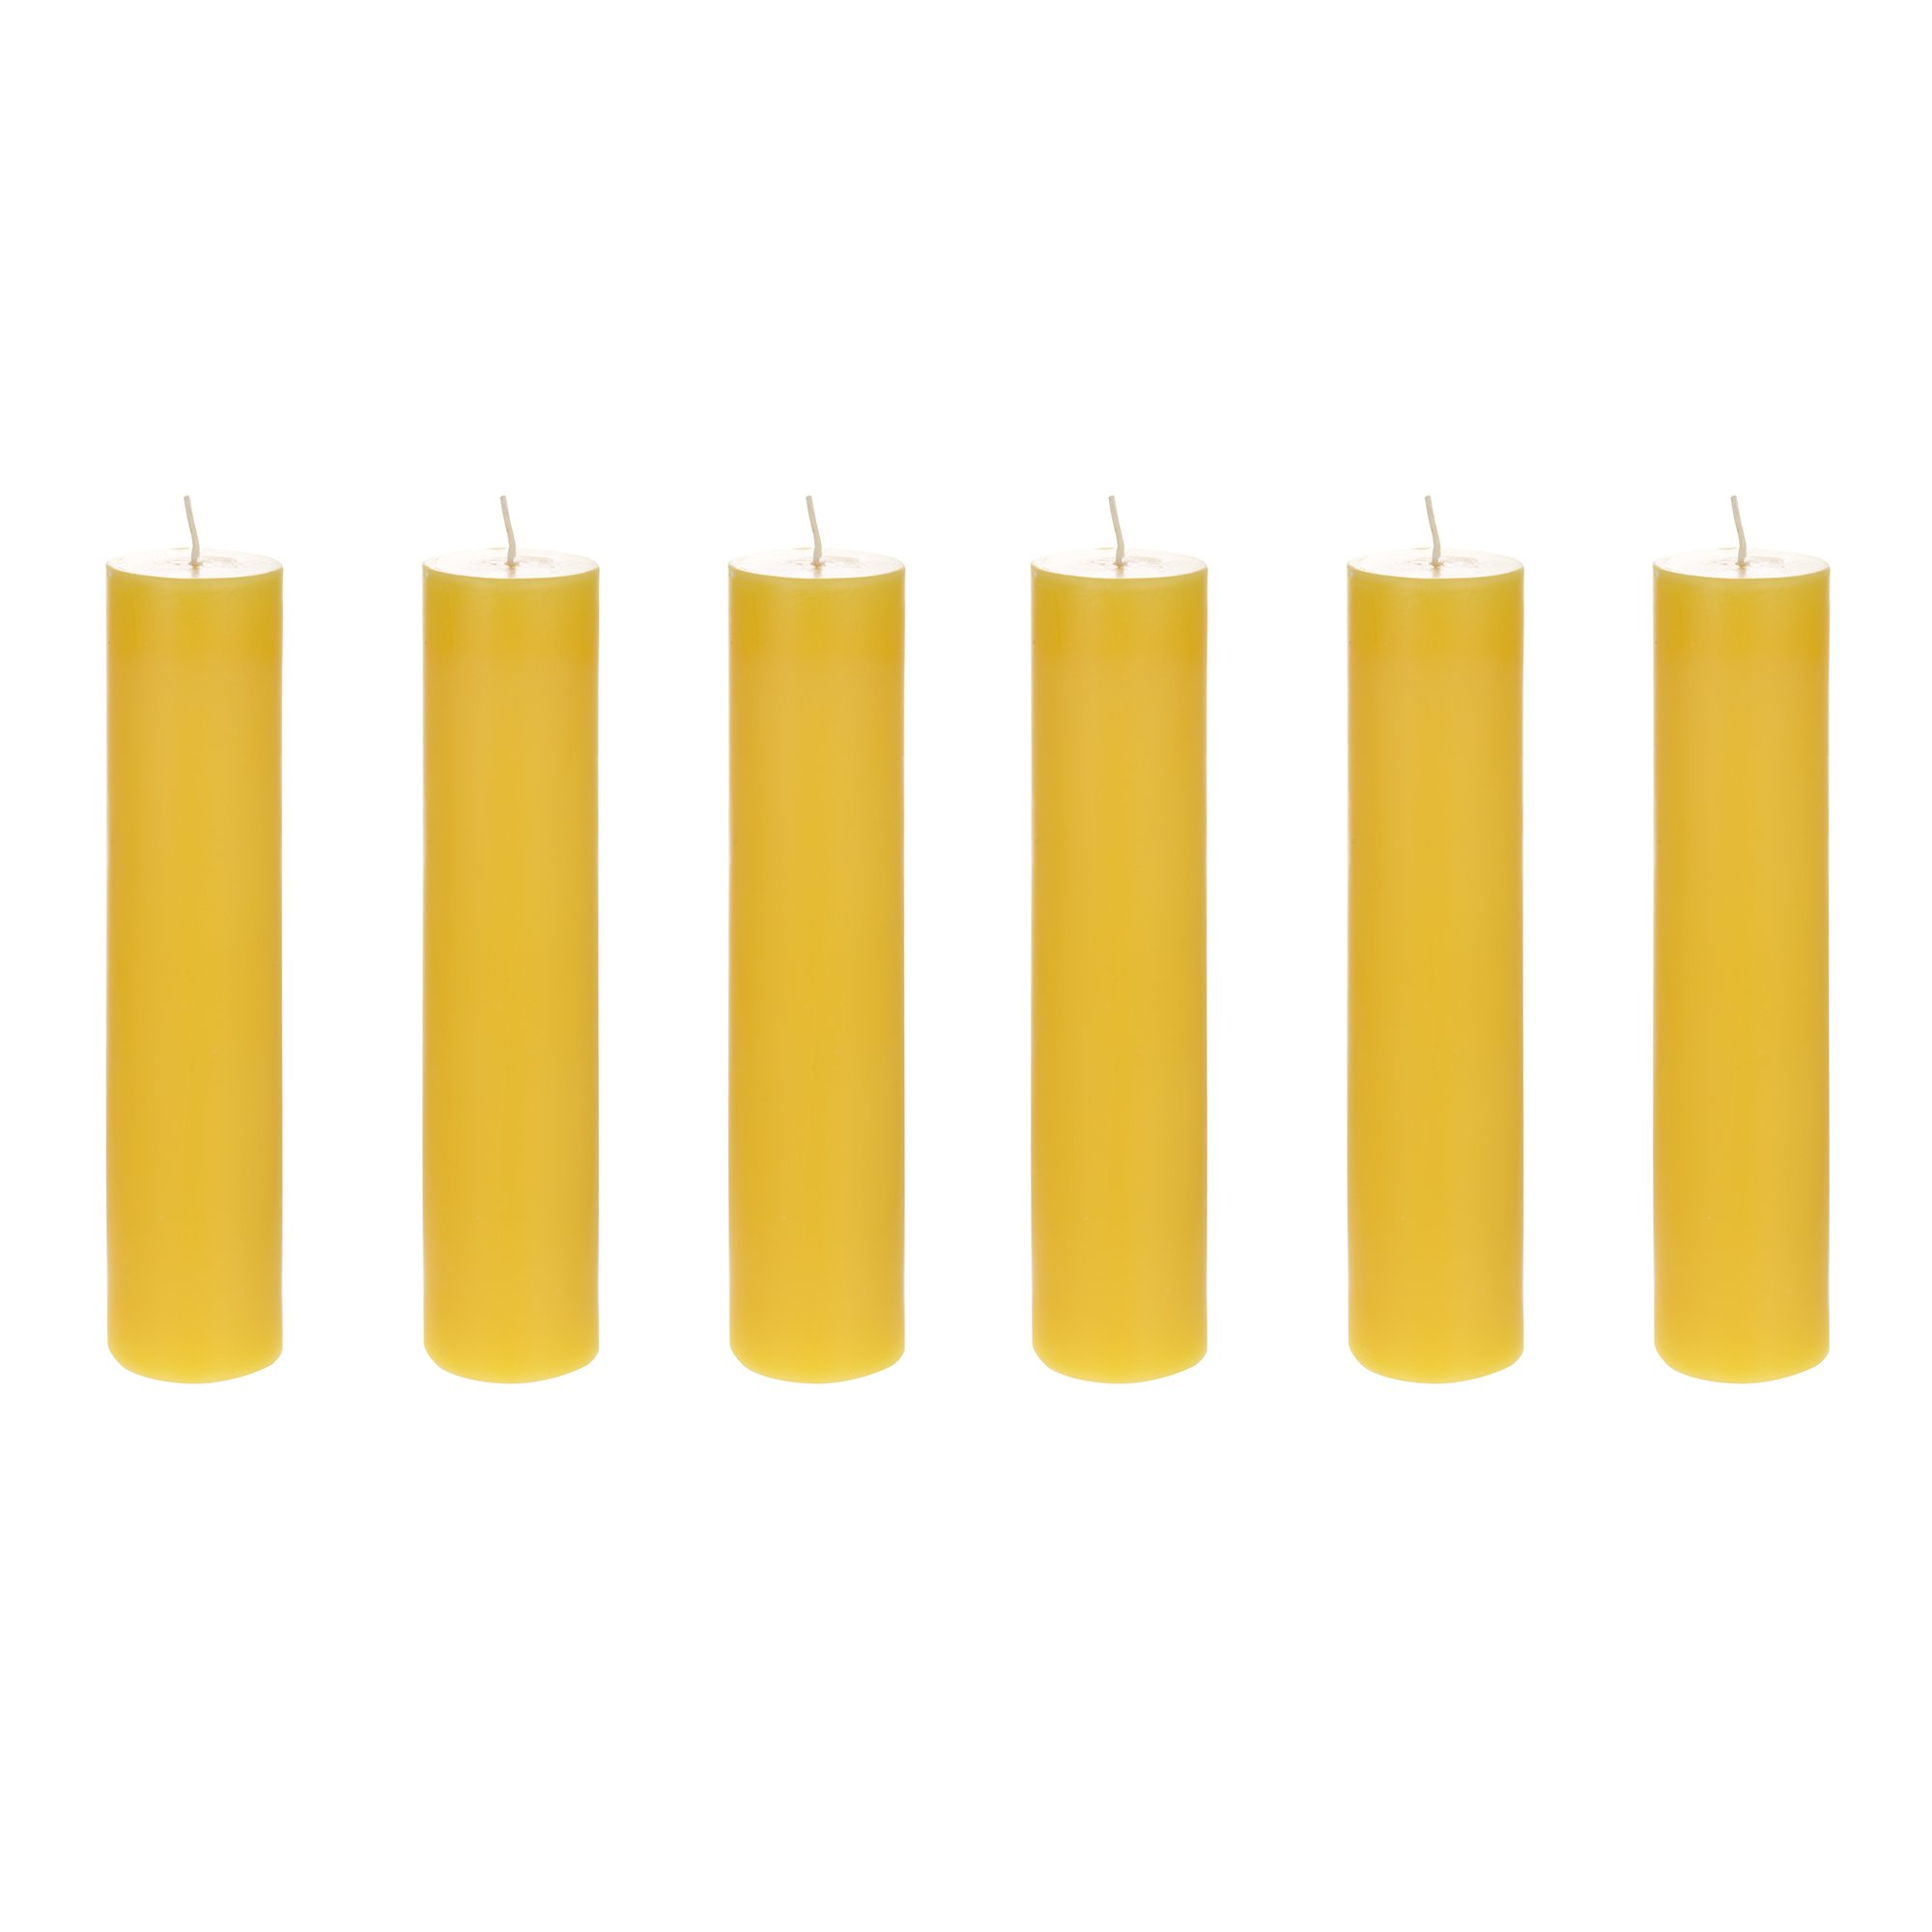 Mega Candles 6 pcs Citronella Round Pillar Candle | Hand Poured Paraffin Wax Candles 2'' x 9'' | Bug Repellent Candles For Indoor And Outdoor Use | Everyday Candles For Mosquitoes And Insects